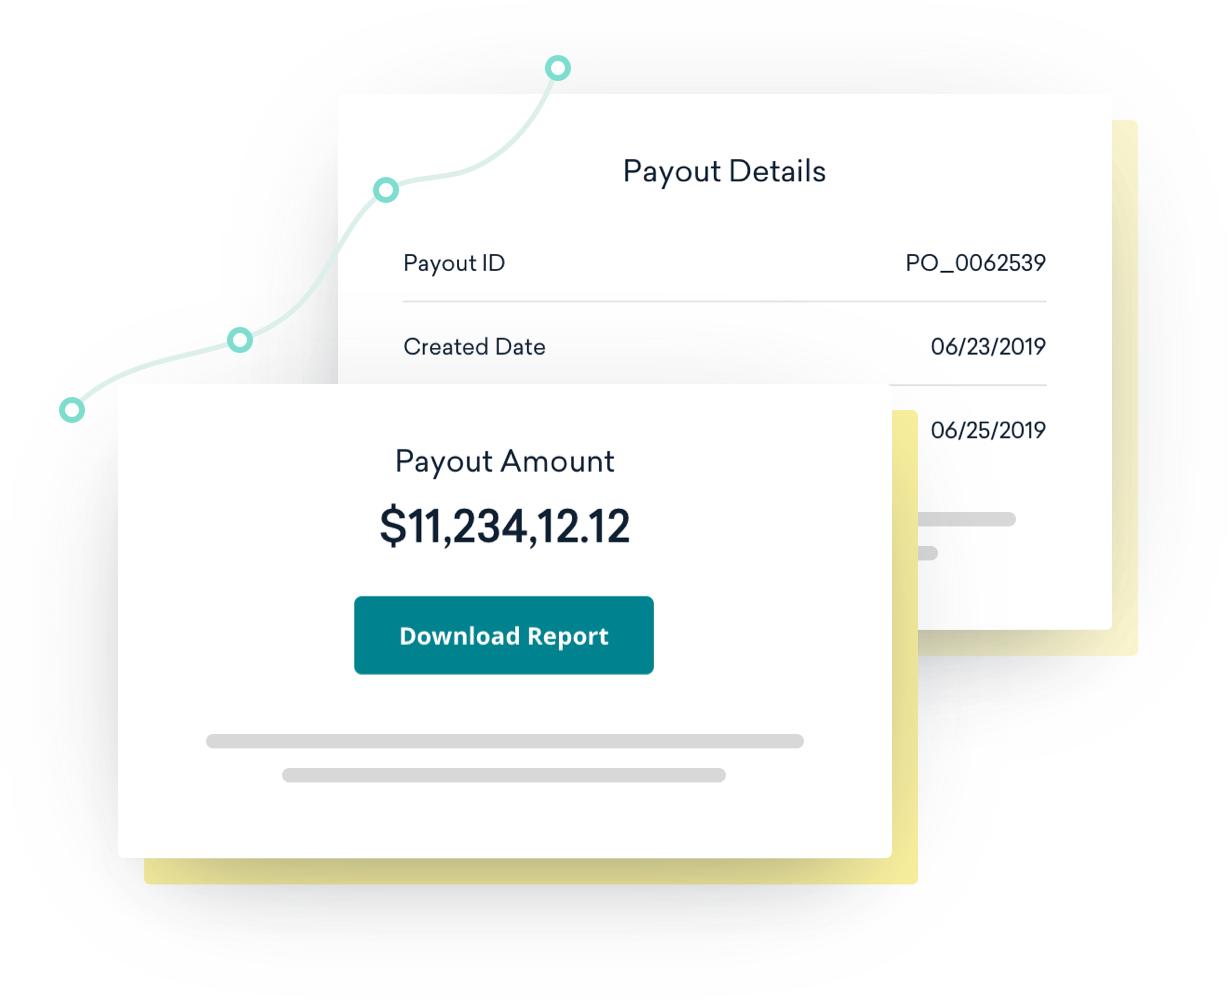 Example of a Classy Pay payout report with all transaction data